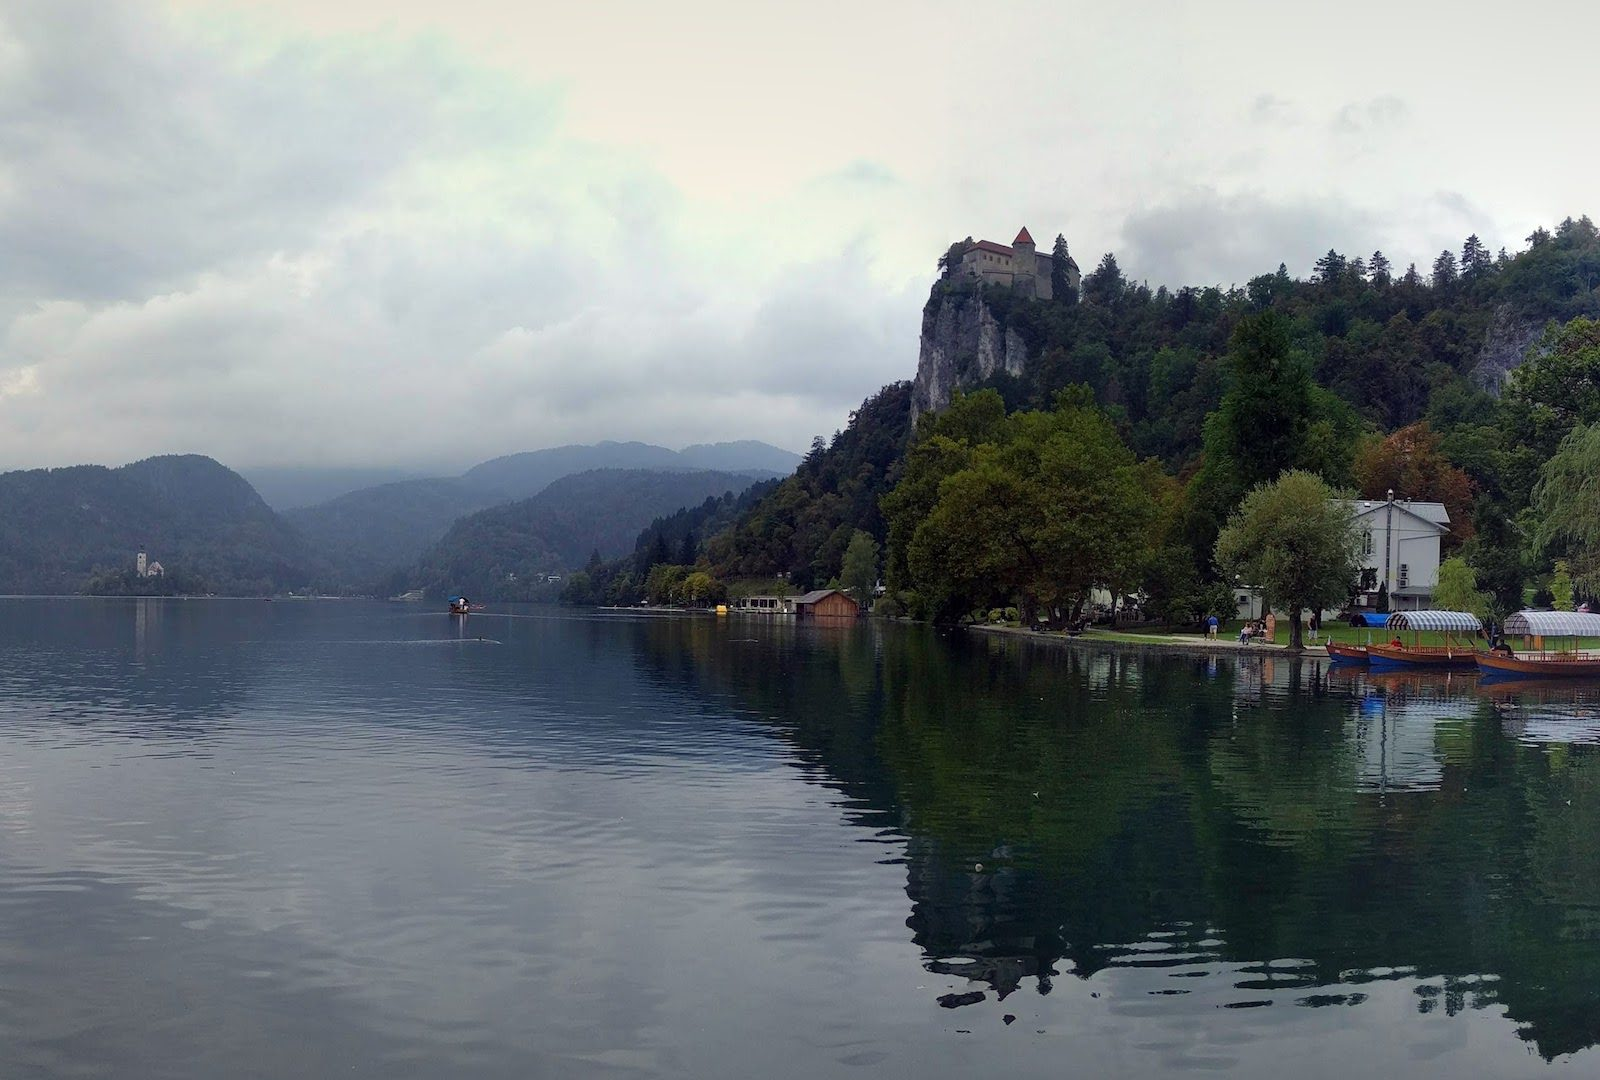 The idyllic village of Bled